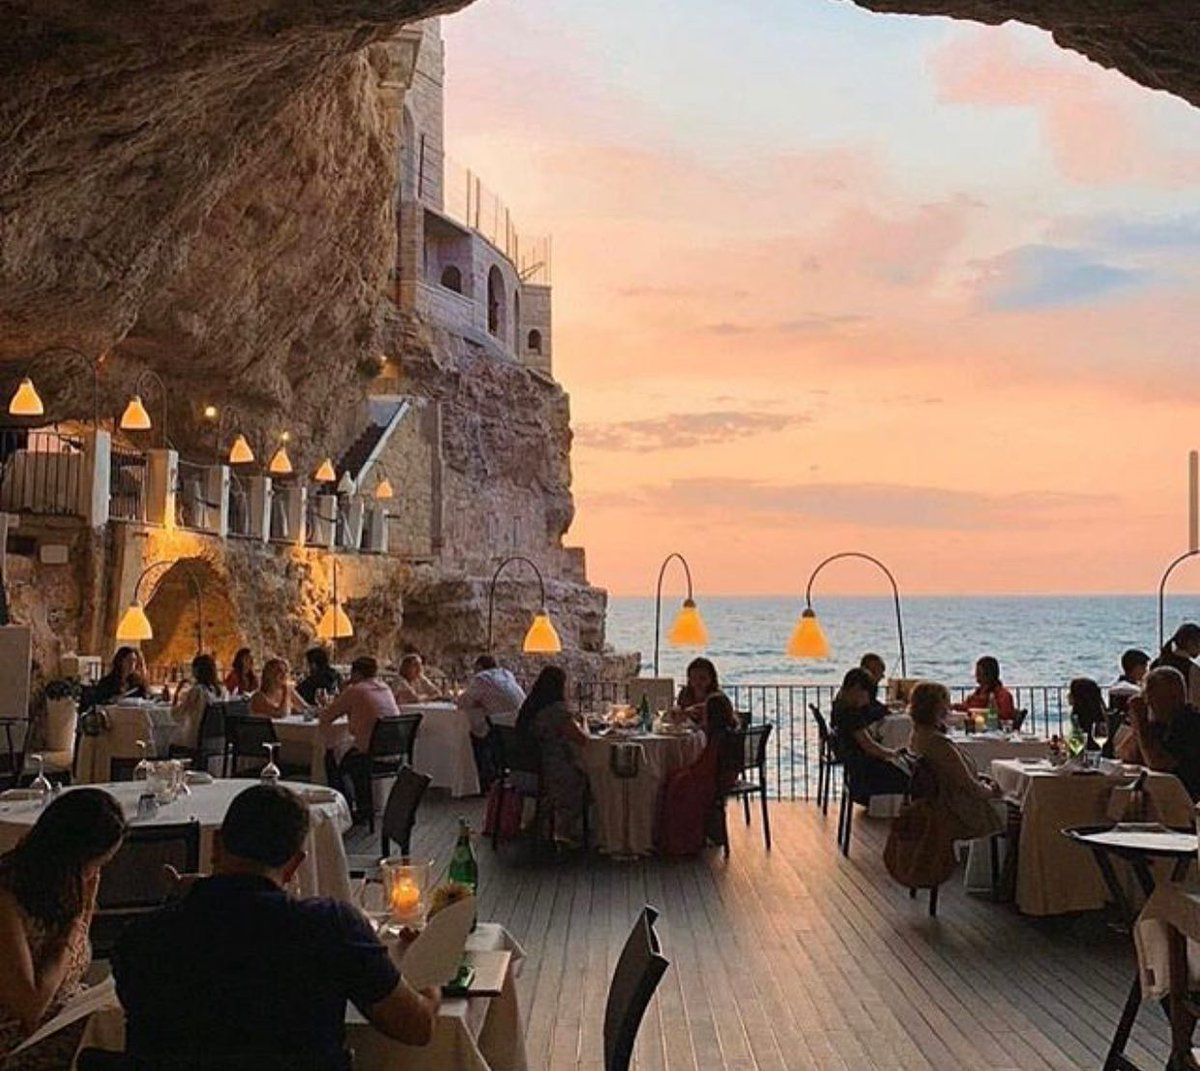 Obsessed with this view! I will have to take a trip to Ristorante Hotel Grotta Palazzese after quarantine is over!! Where are you ready to go?? . . . . #community #travel #realestate #realestateagent #lovemyjob❤️ #realtor #realtorlife #expproud #robins_real_estate #folsomlake https://t.co/hrT8tJQepf